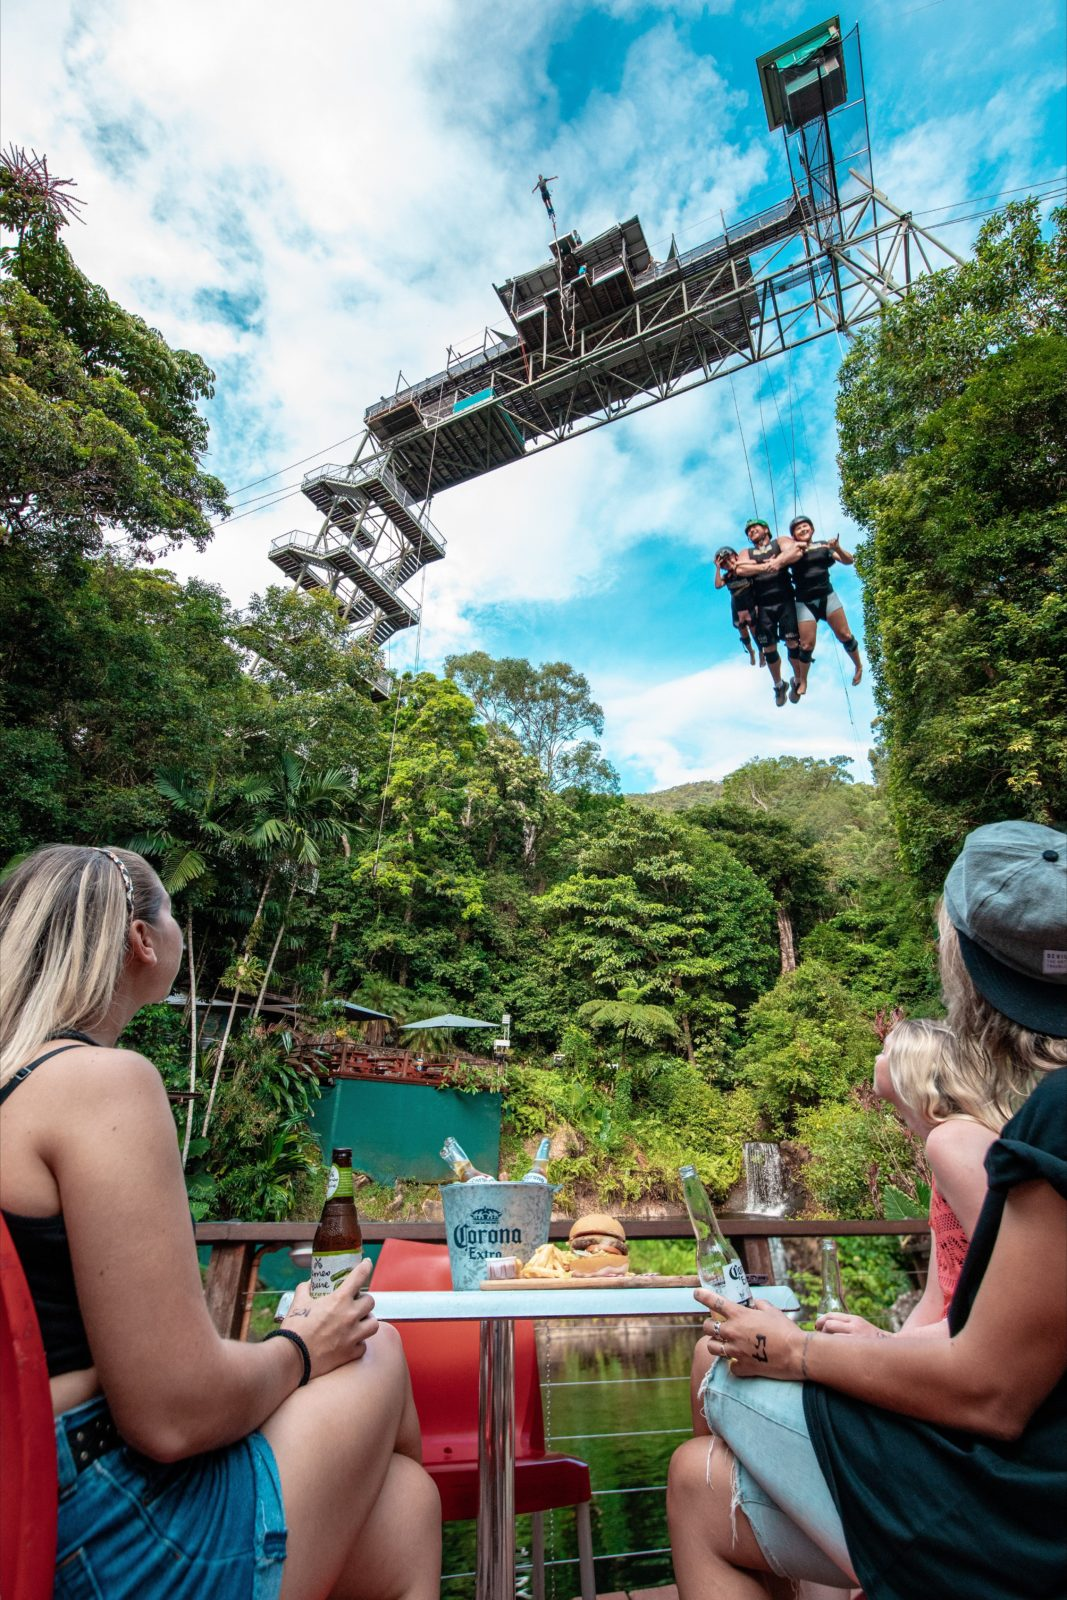 A look into the adventurous world of Skypark Cairns